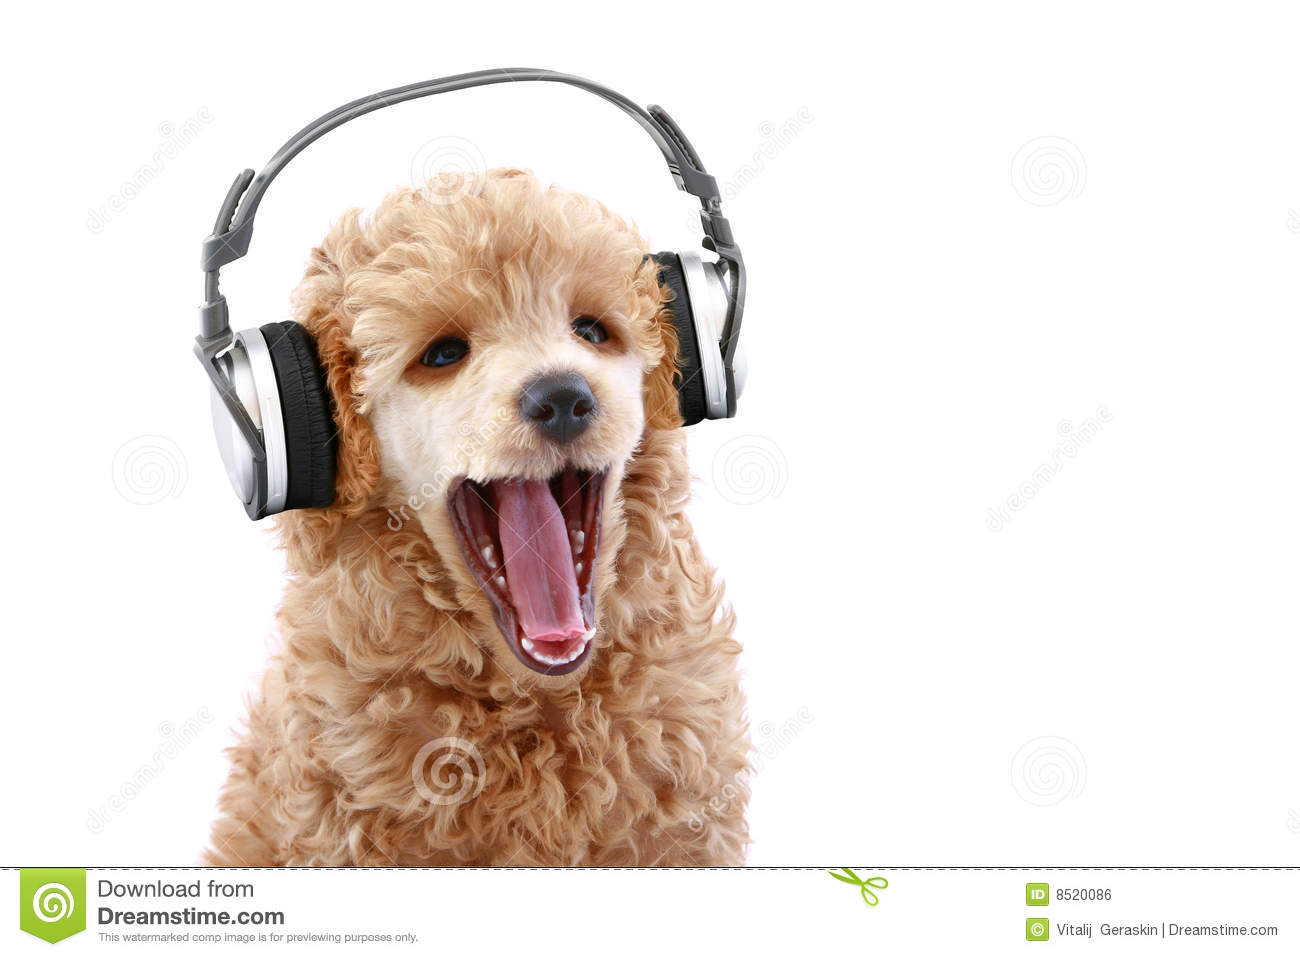 poodle puppy listening music on headphones royalty free Poodle Clip Art 50s Poodle Clip Art